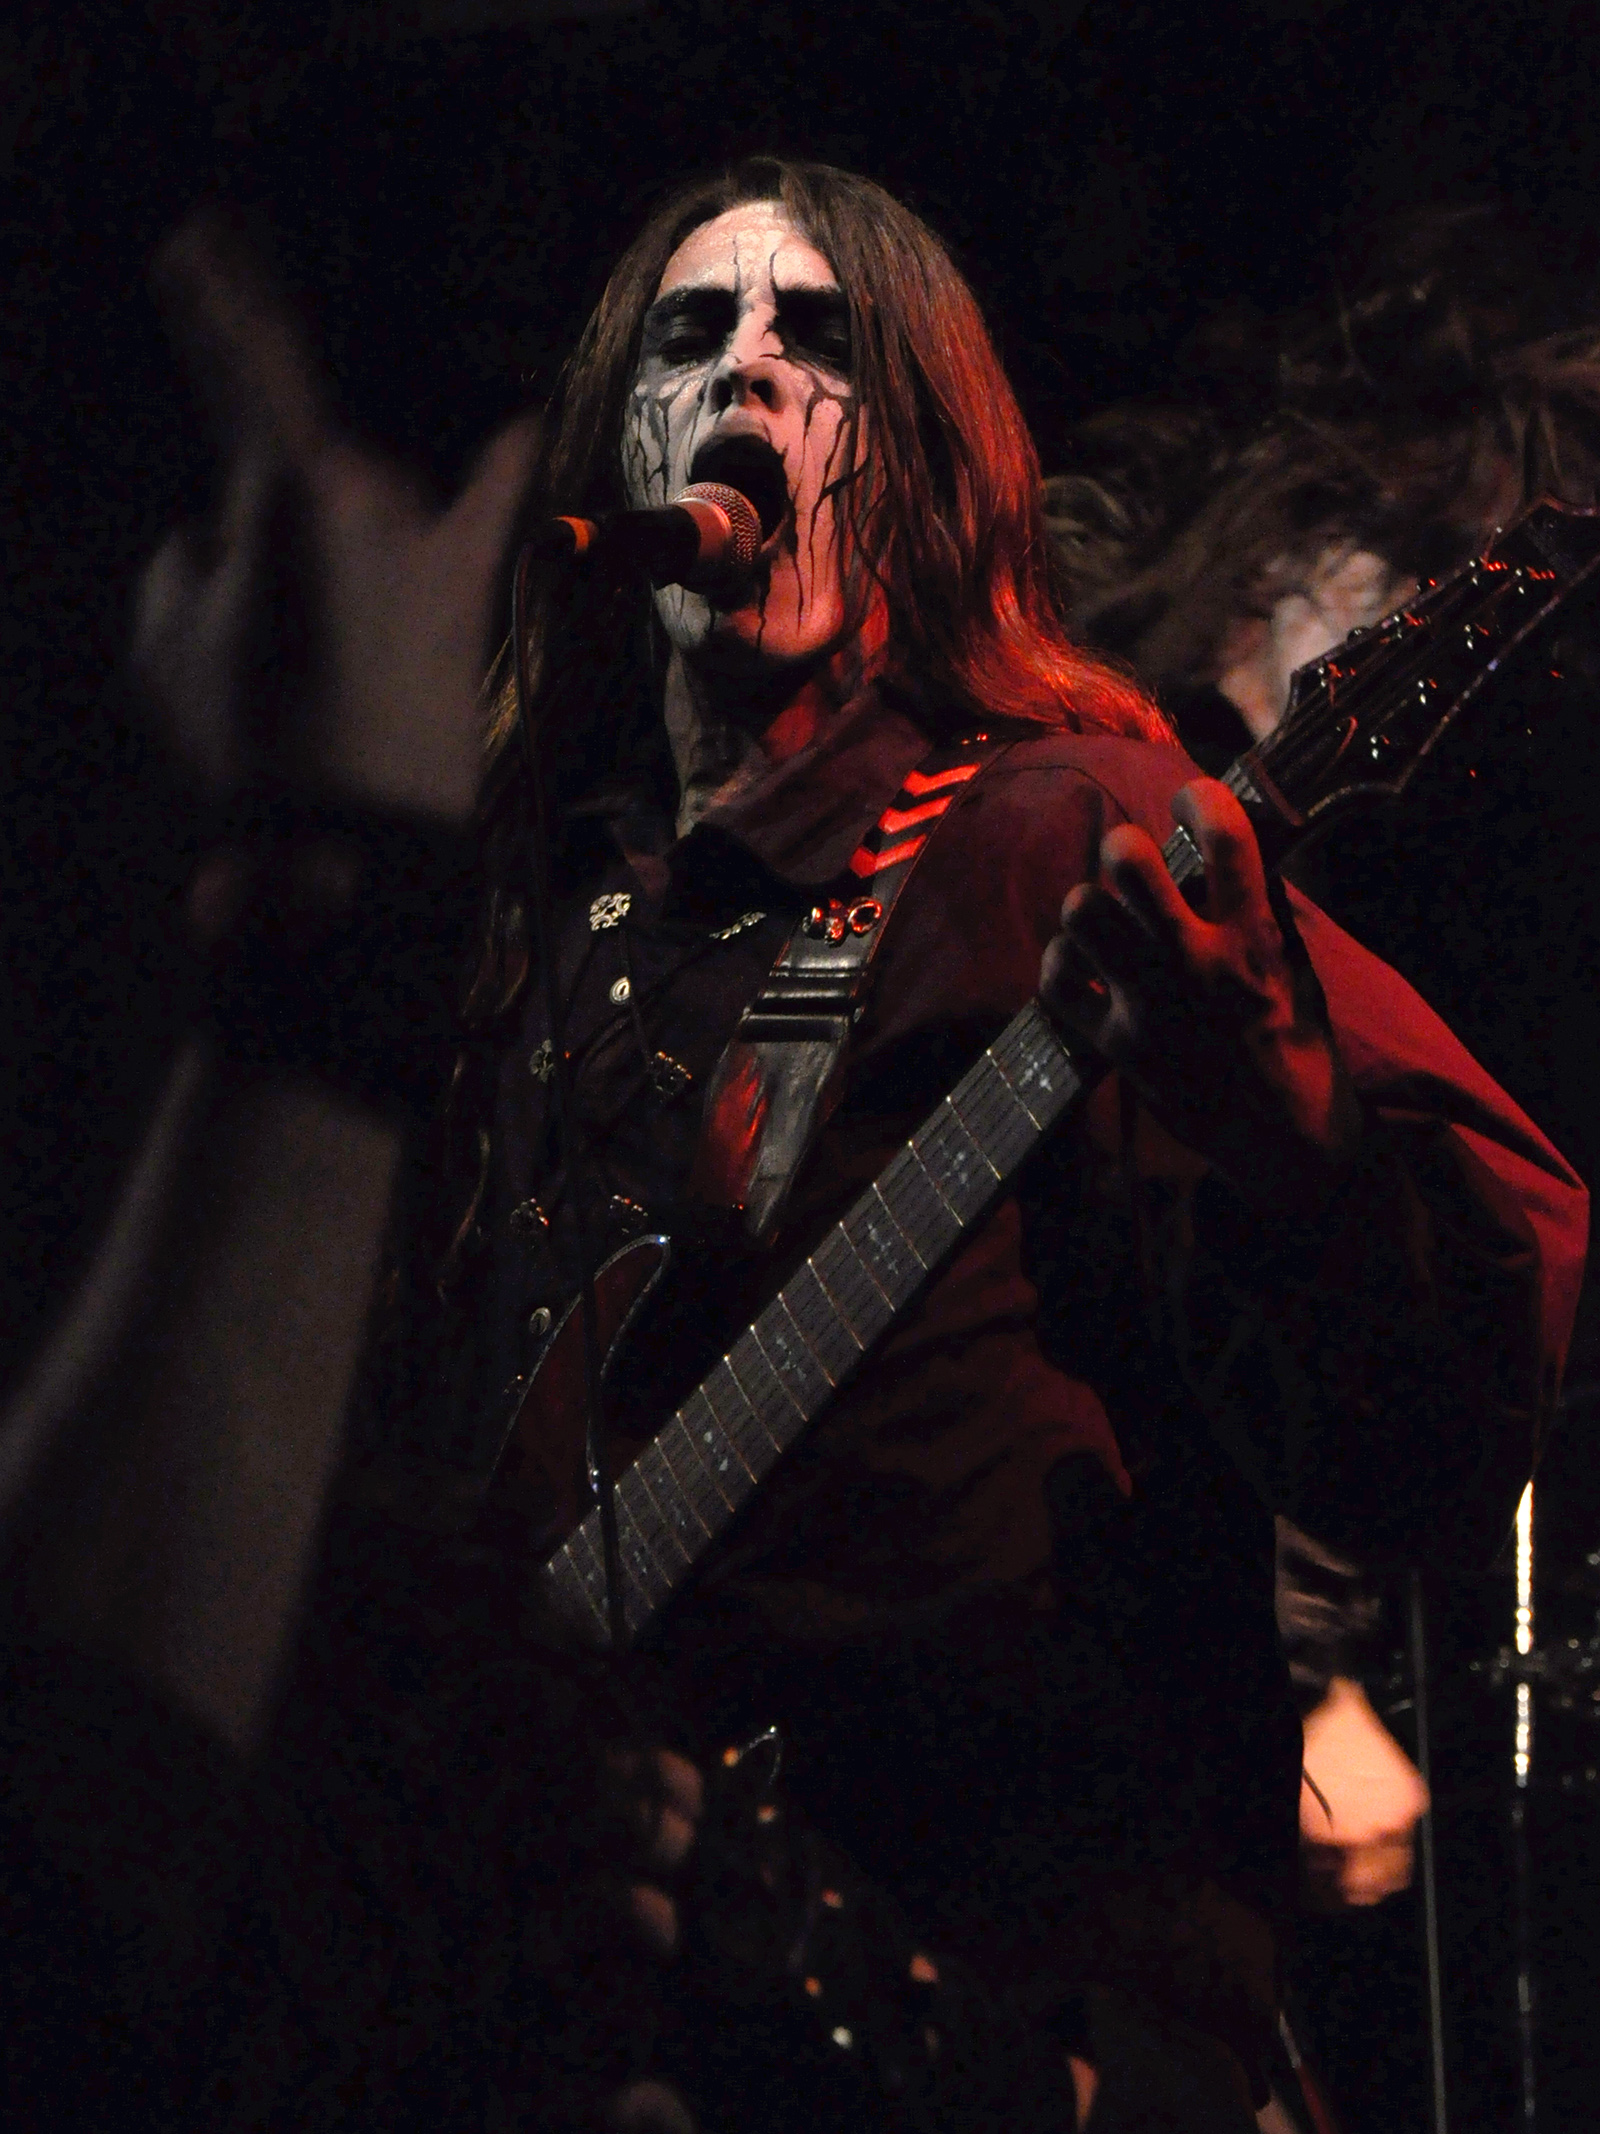 File:Carach Angren Evreux 210209 04.jpg - Wikimedia Commons